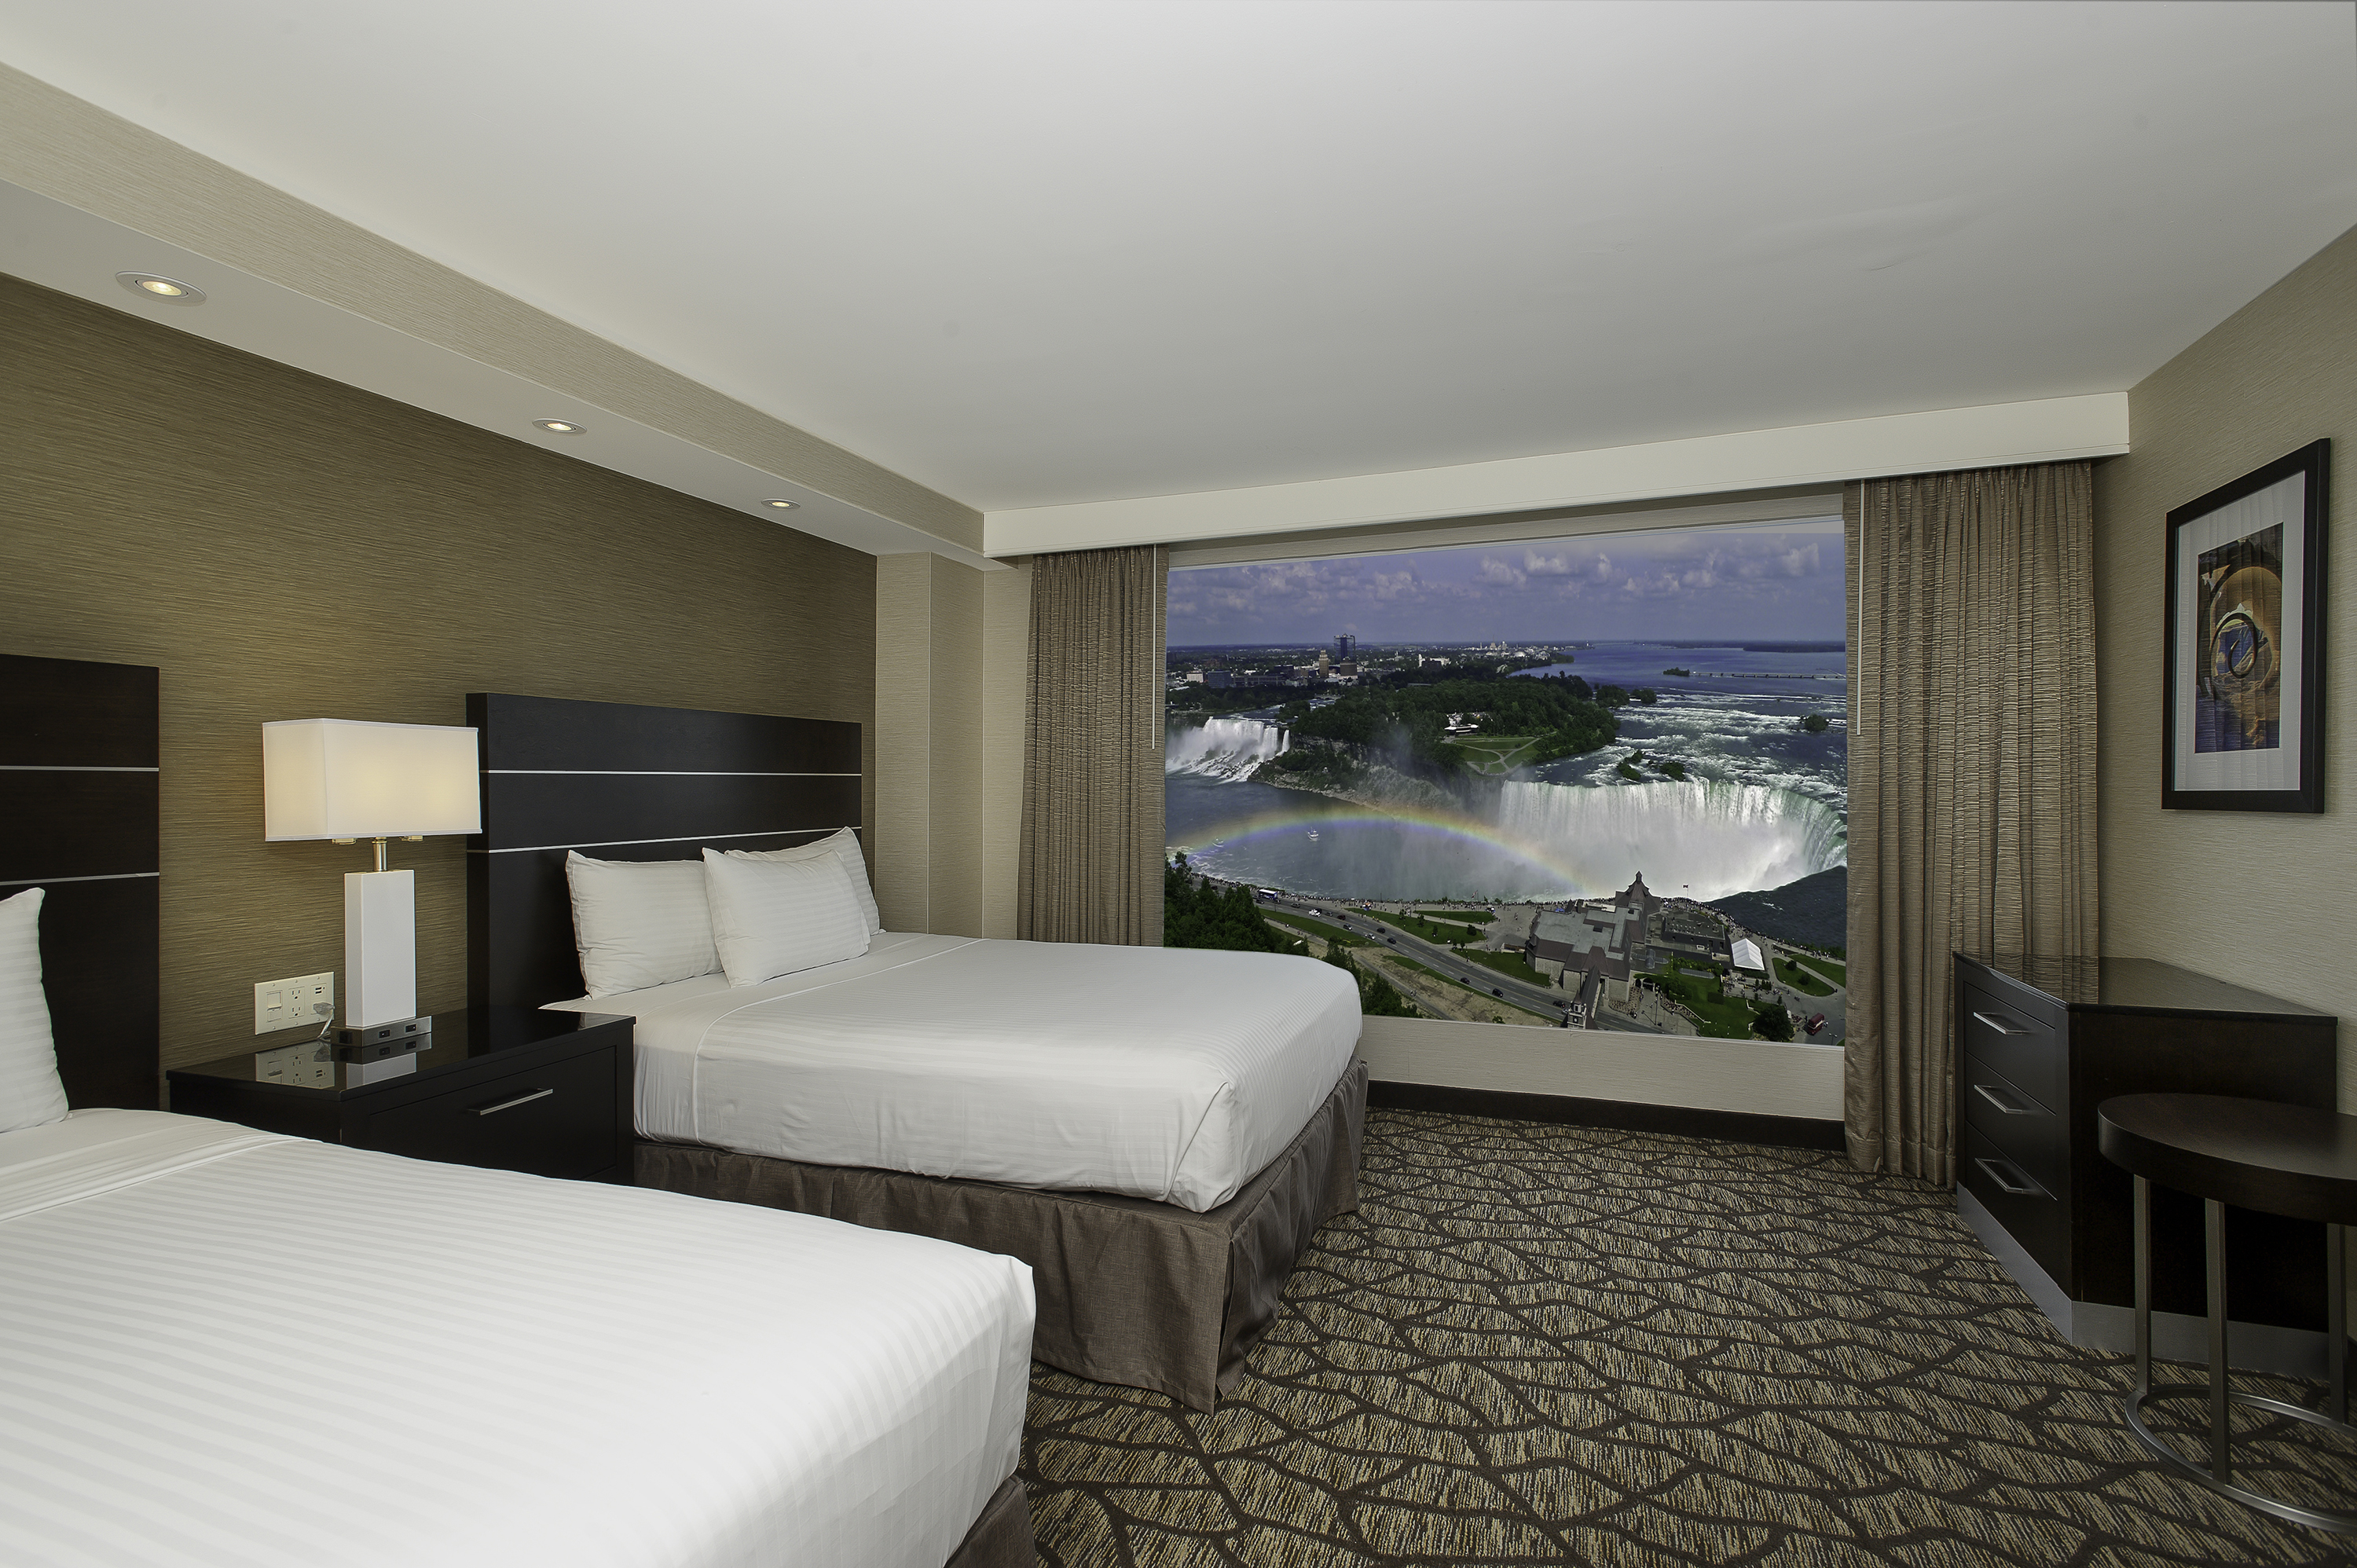 Embassy Suites by Hilton Niagara Falls - Fallsview Hotel, Canada - Hotel Deal June